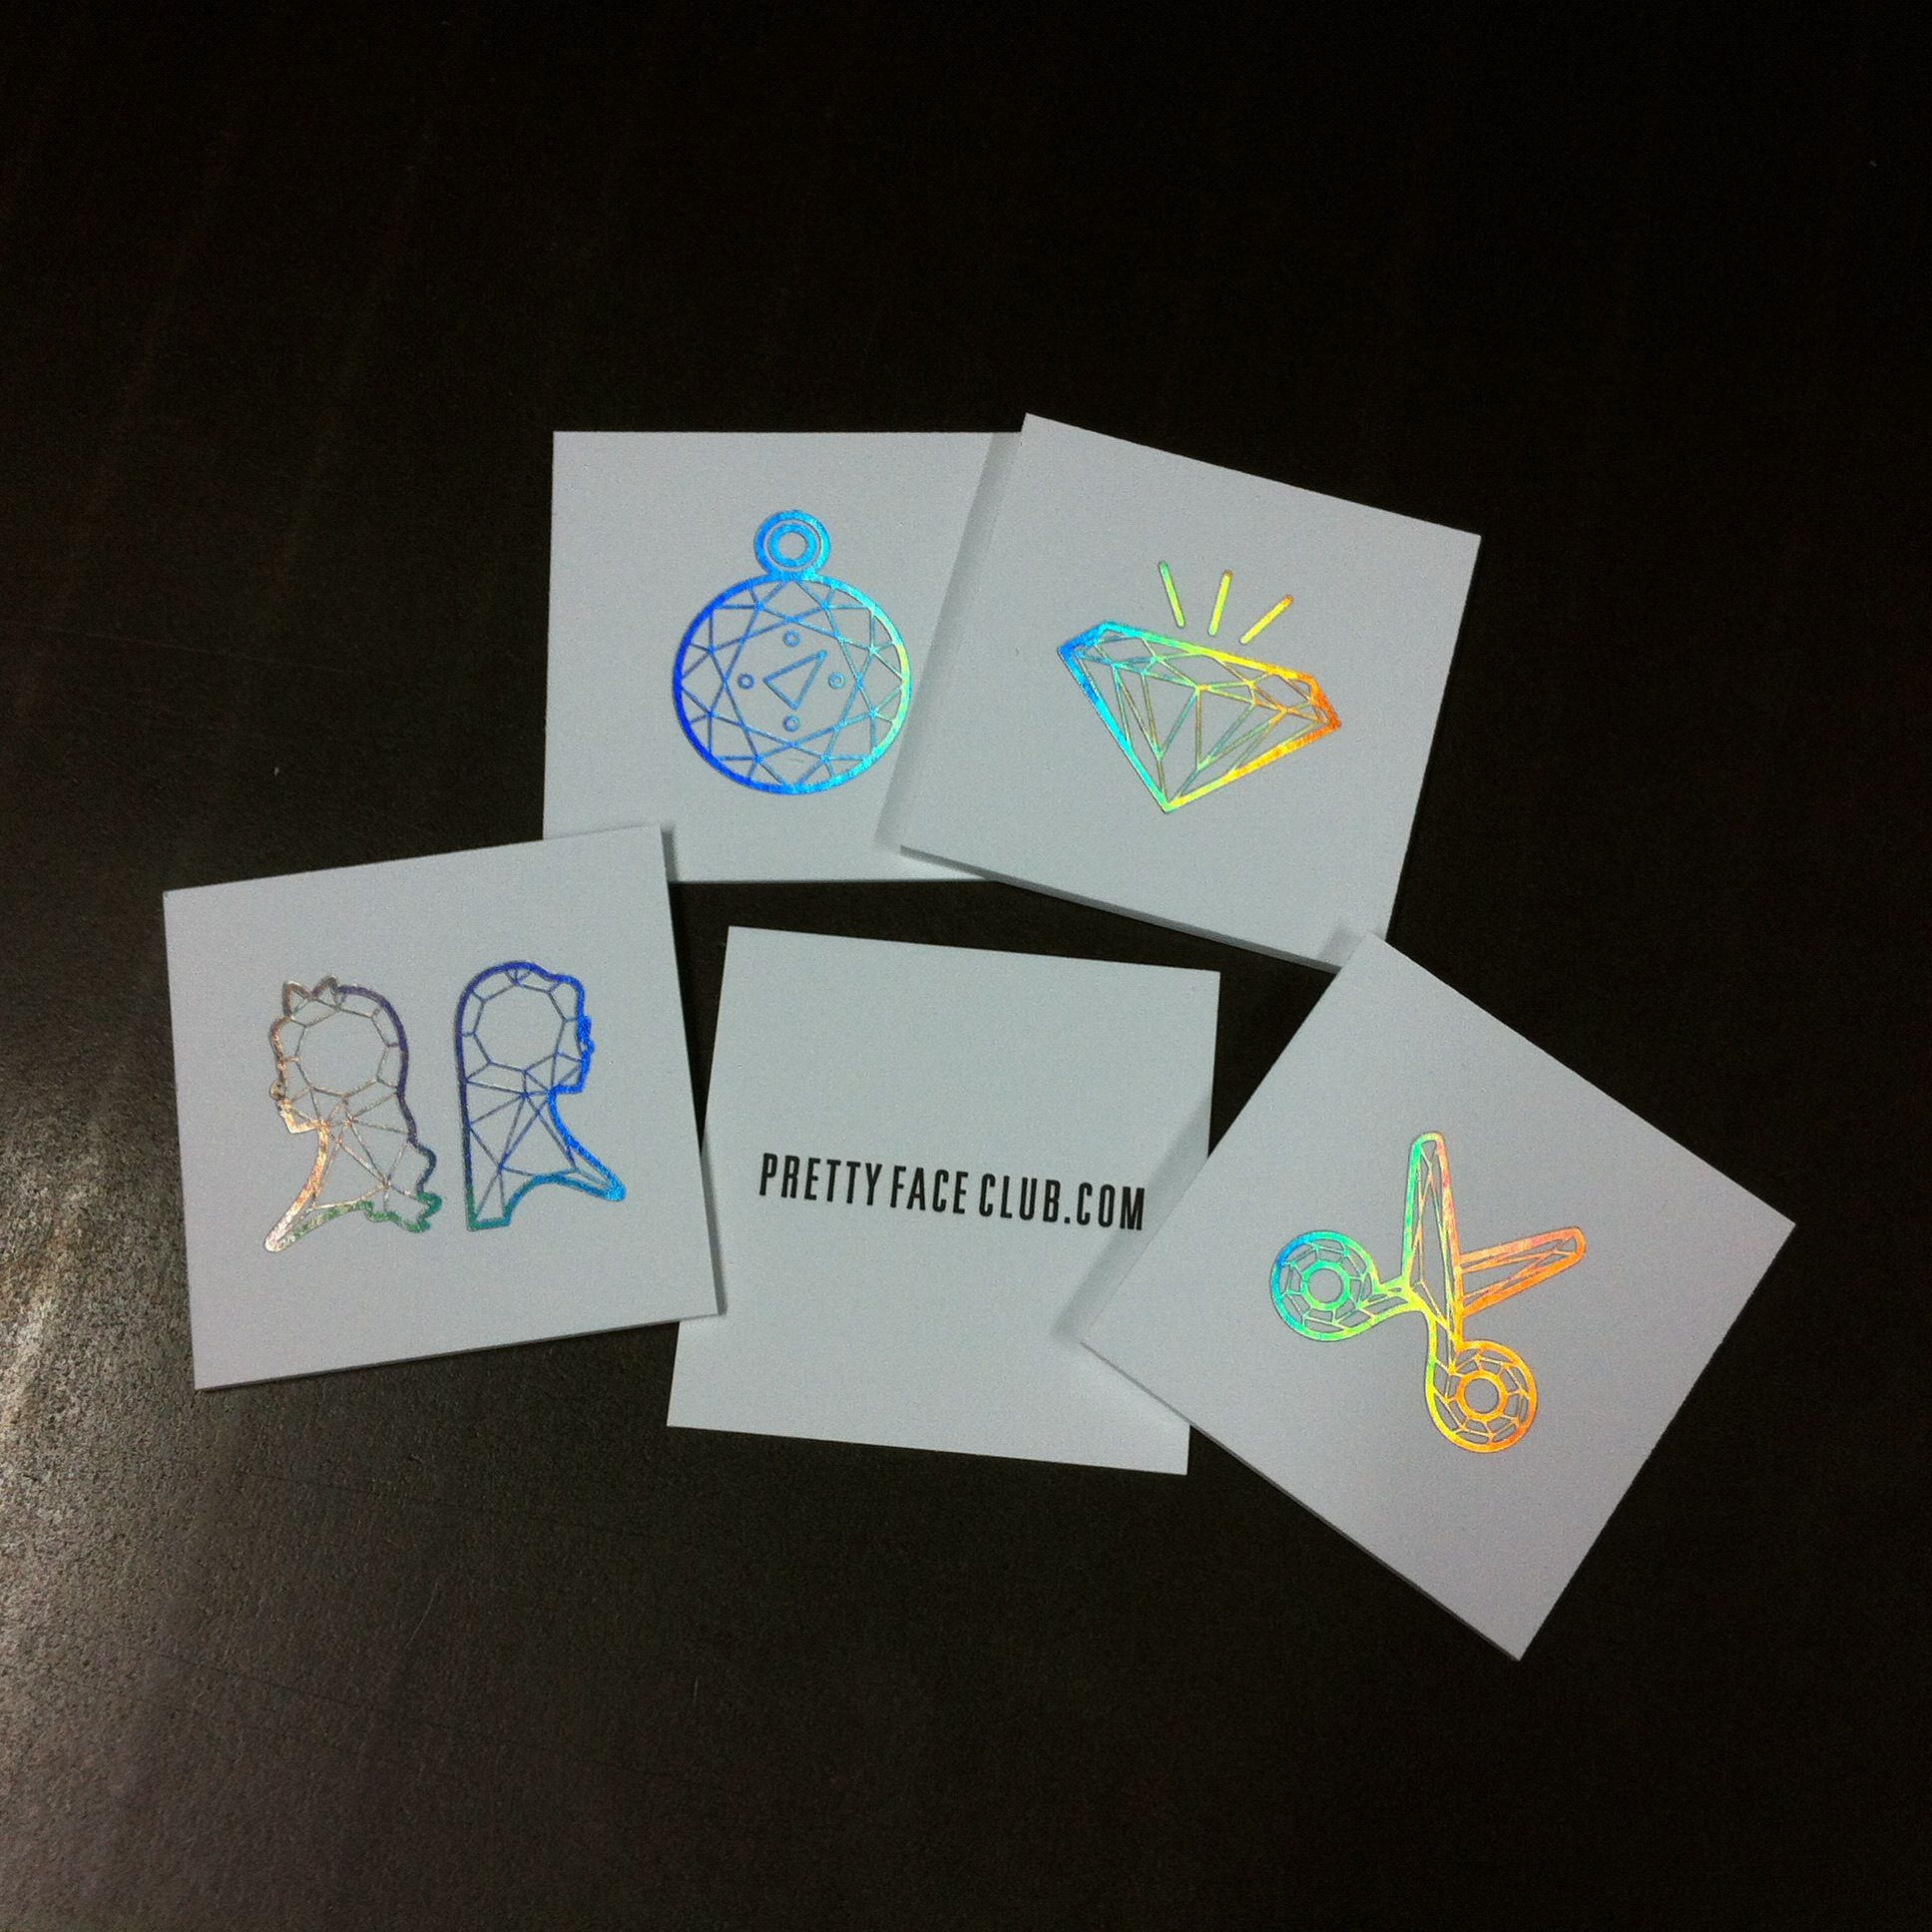 more of the crazy awesome holographic foil we printed for pretty